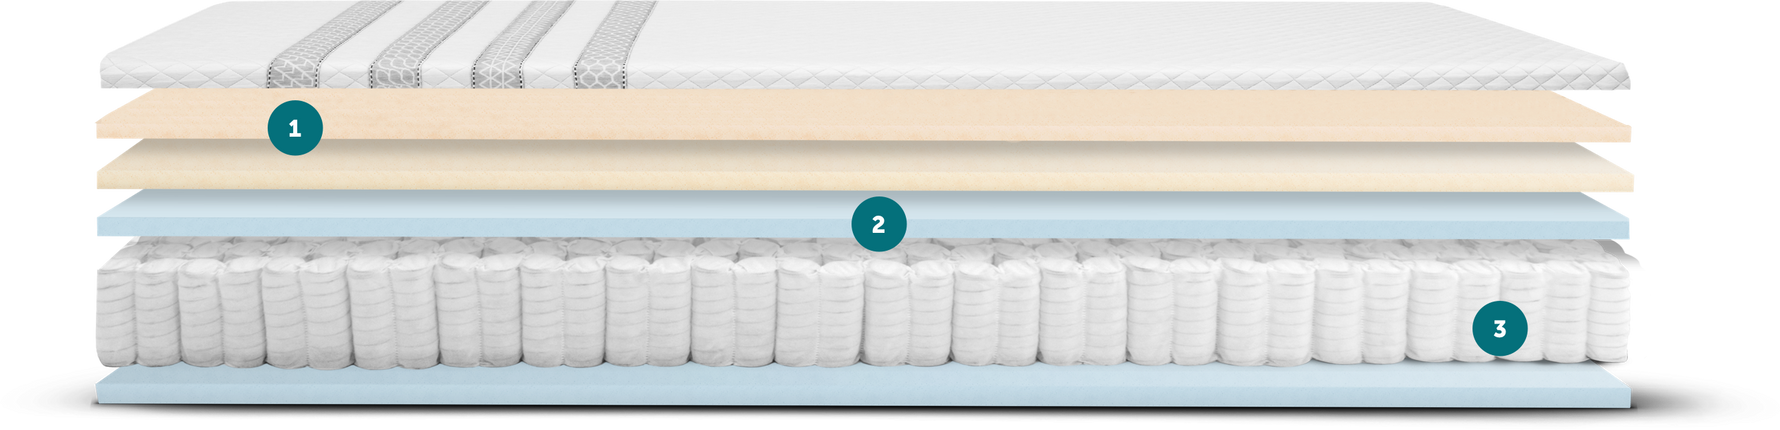 Leesa Mattress Diagram